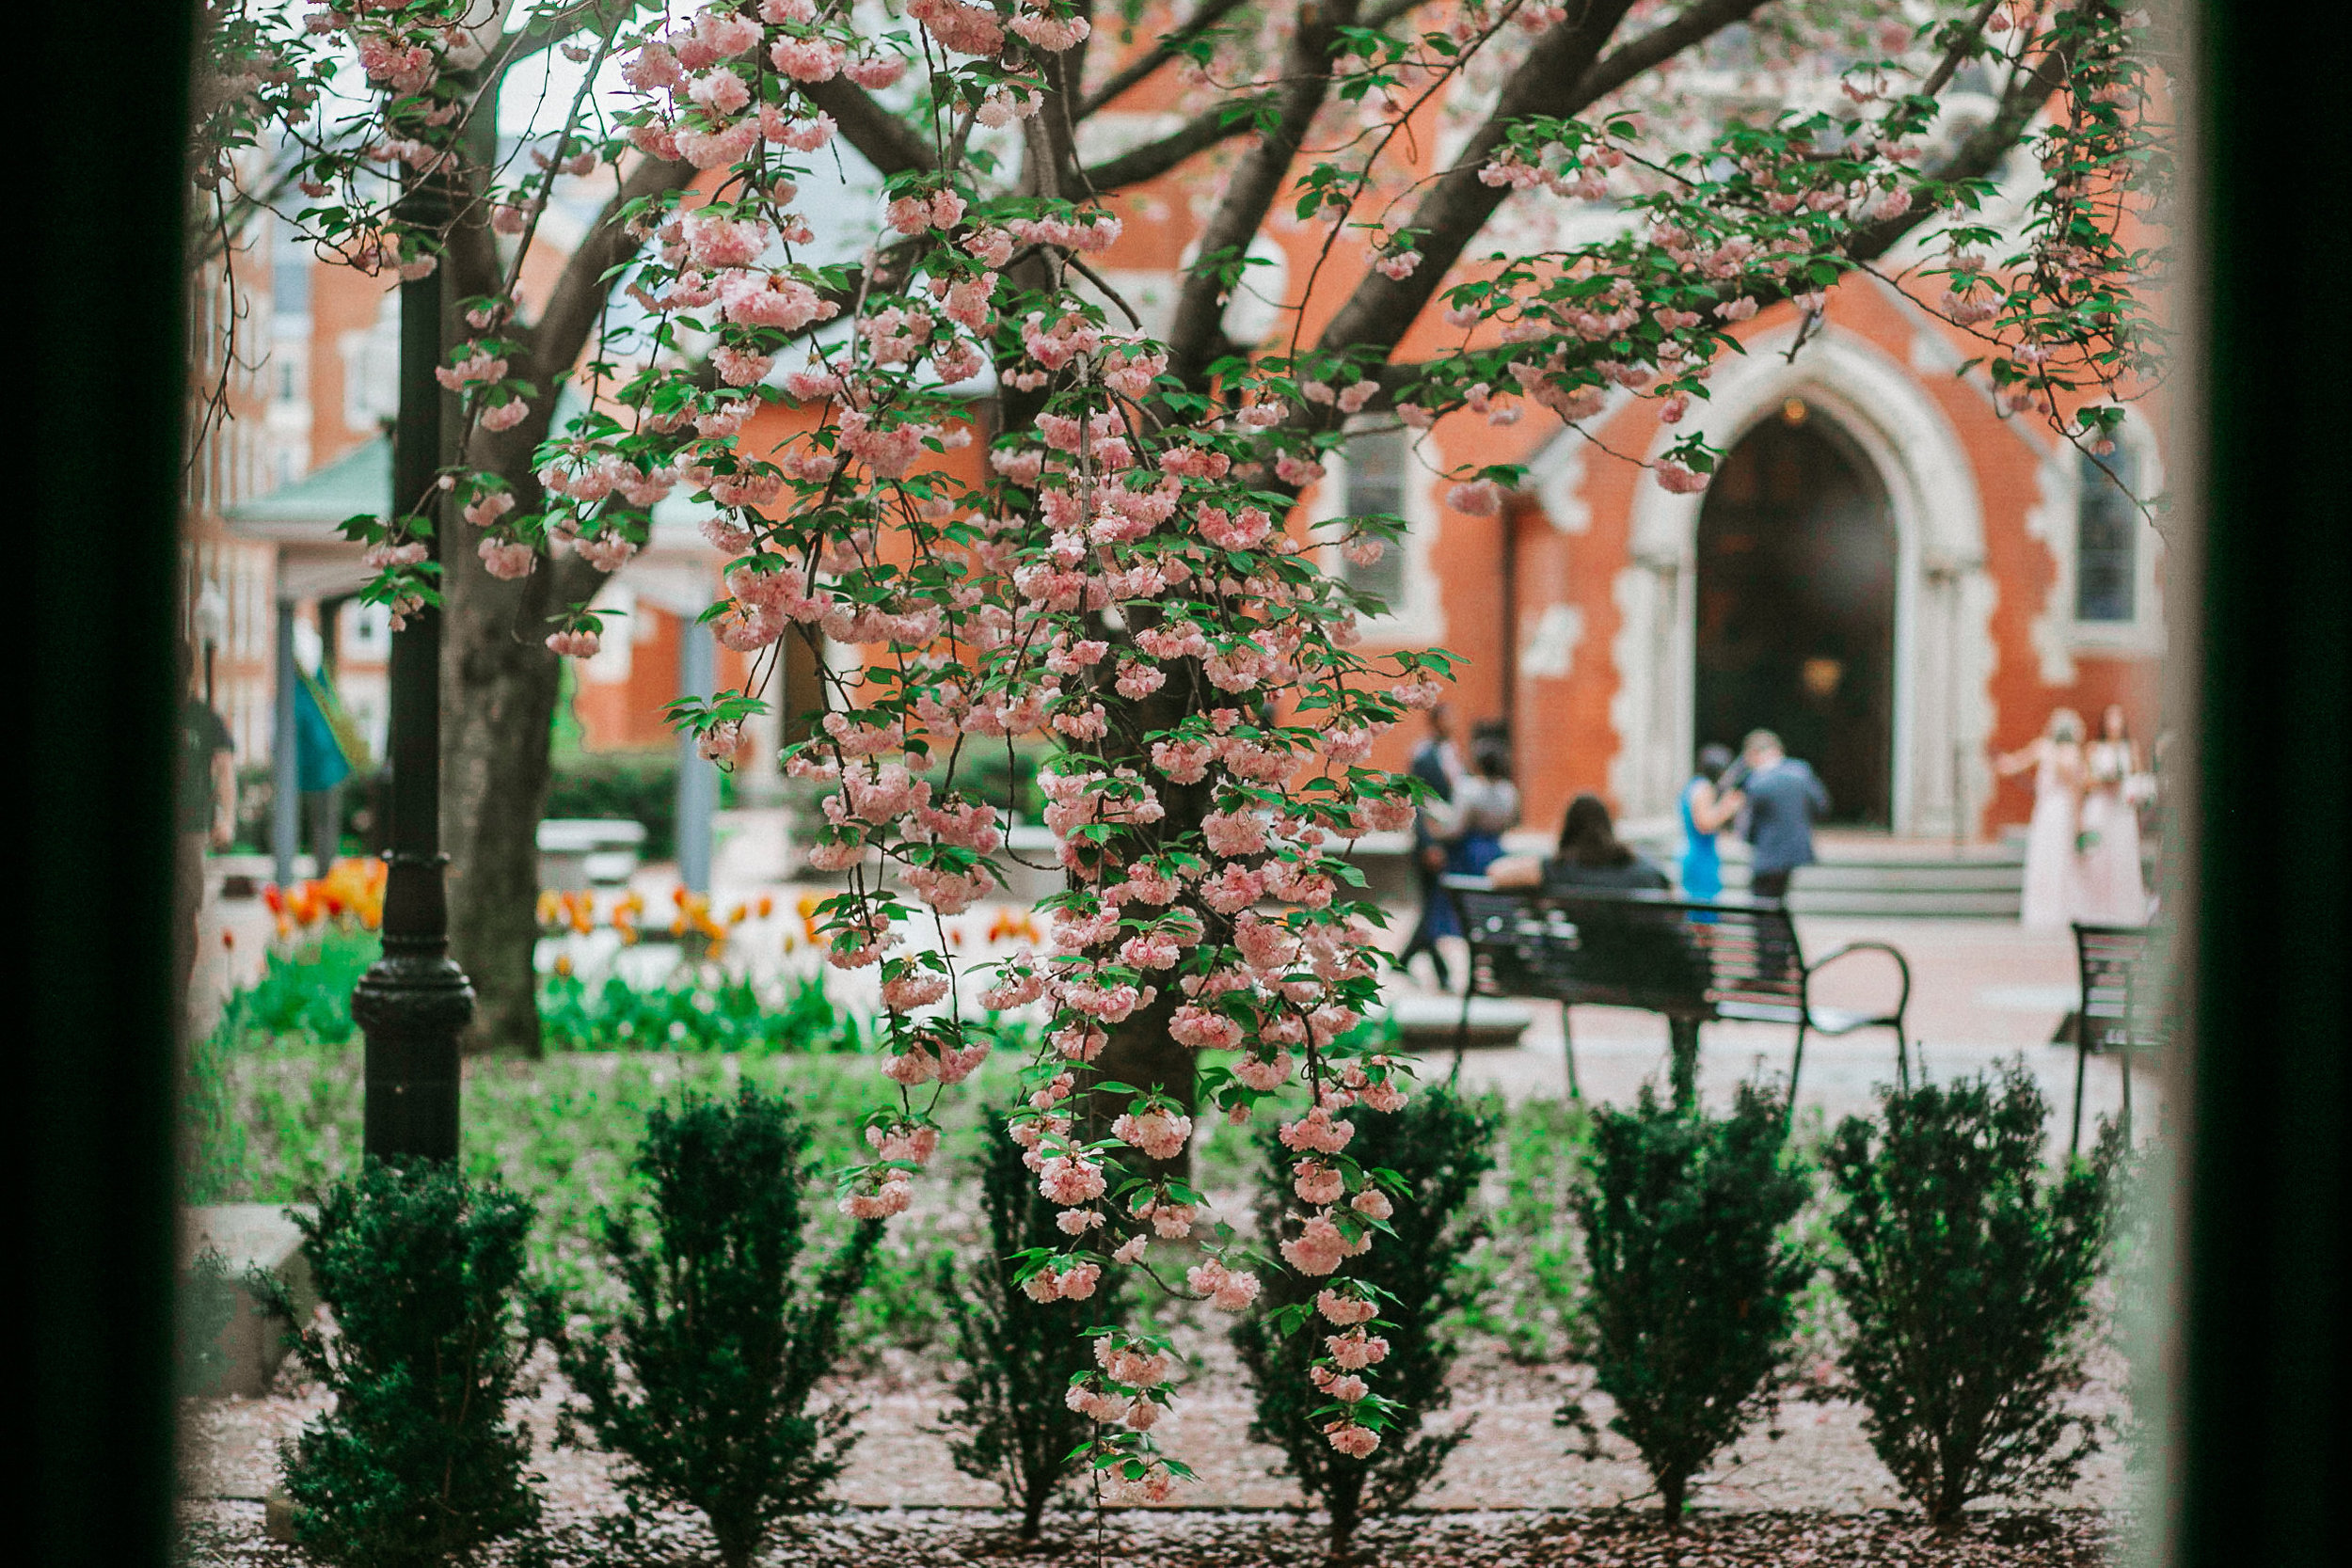 Flowering tree outside church